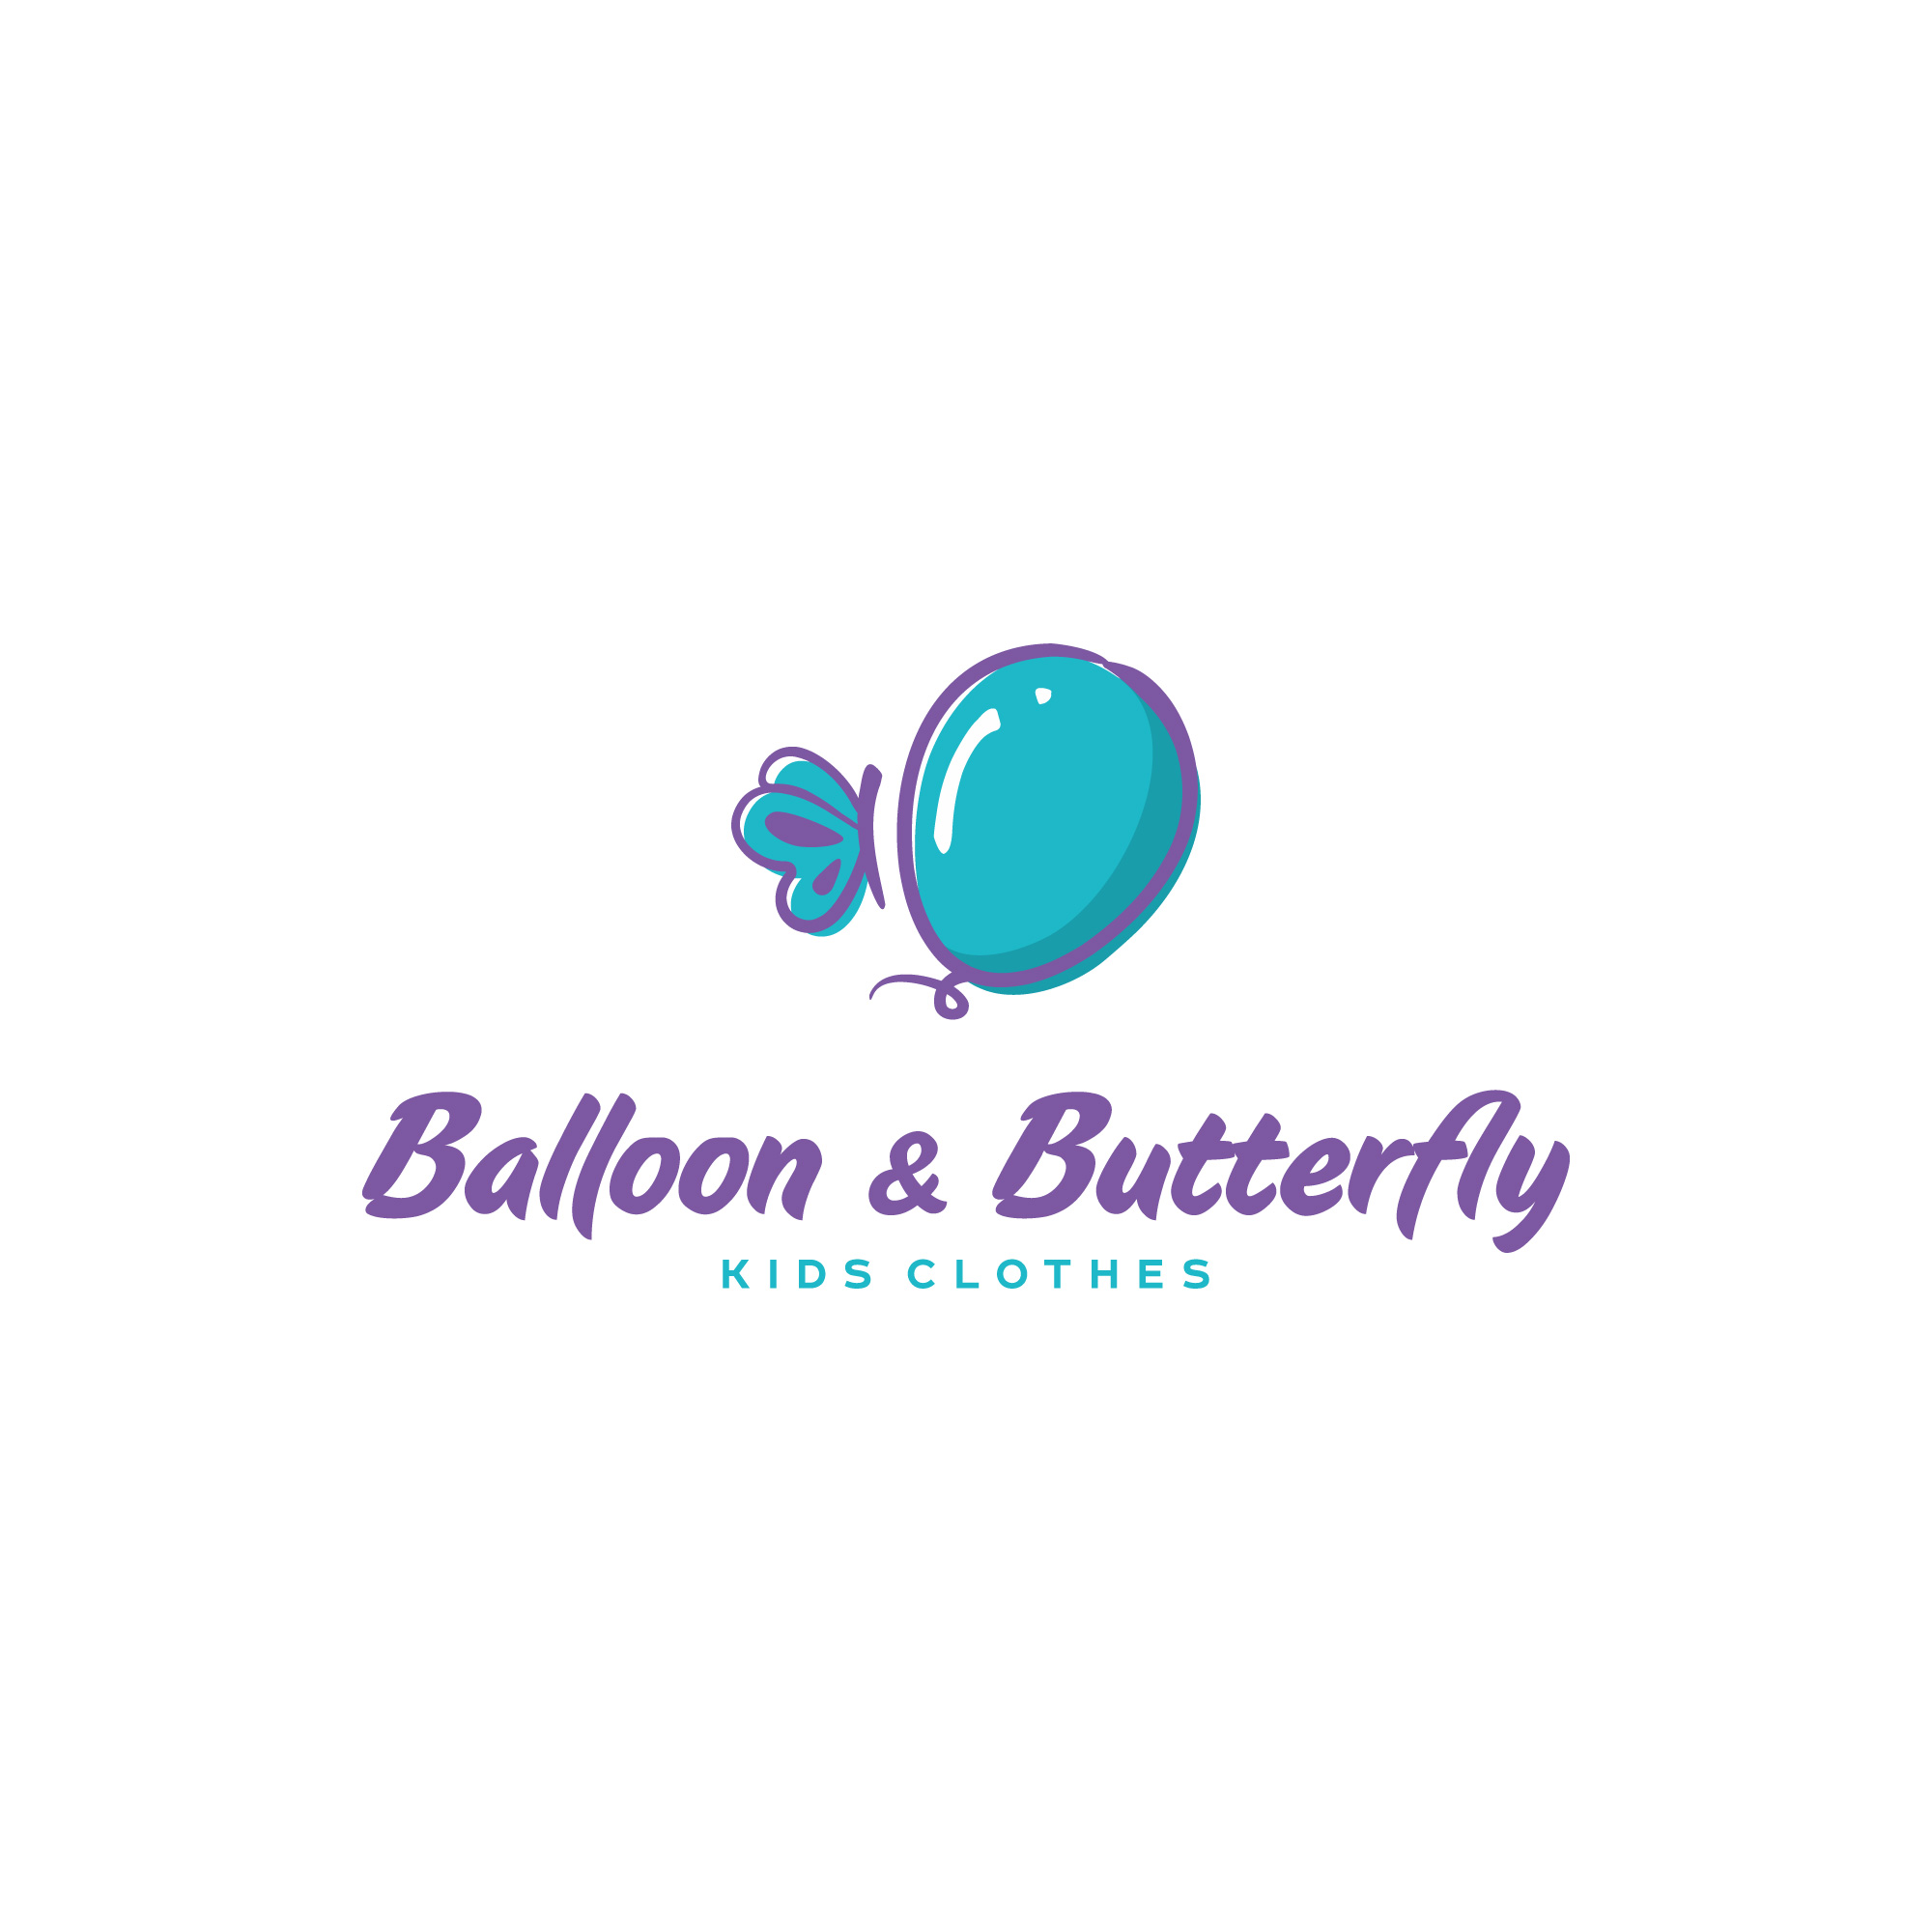 Balloon & Butterfly